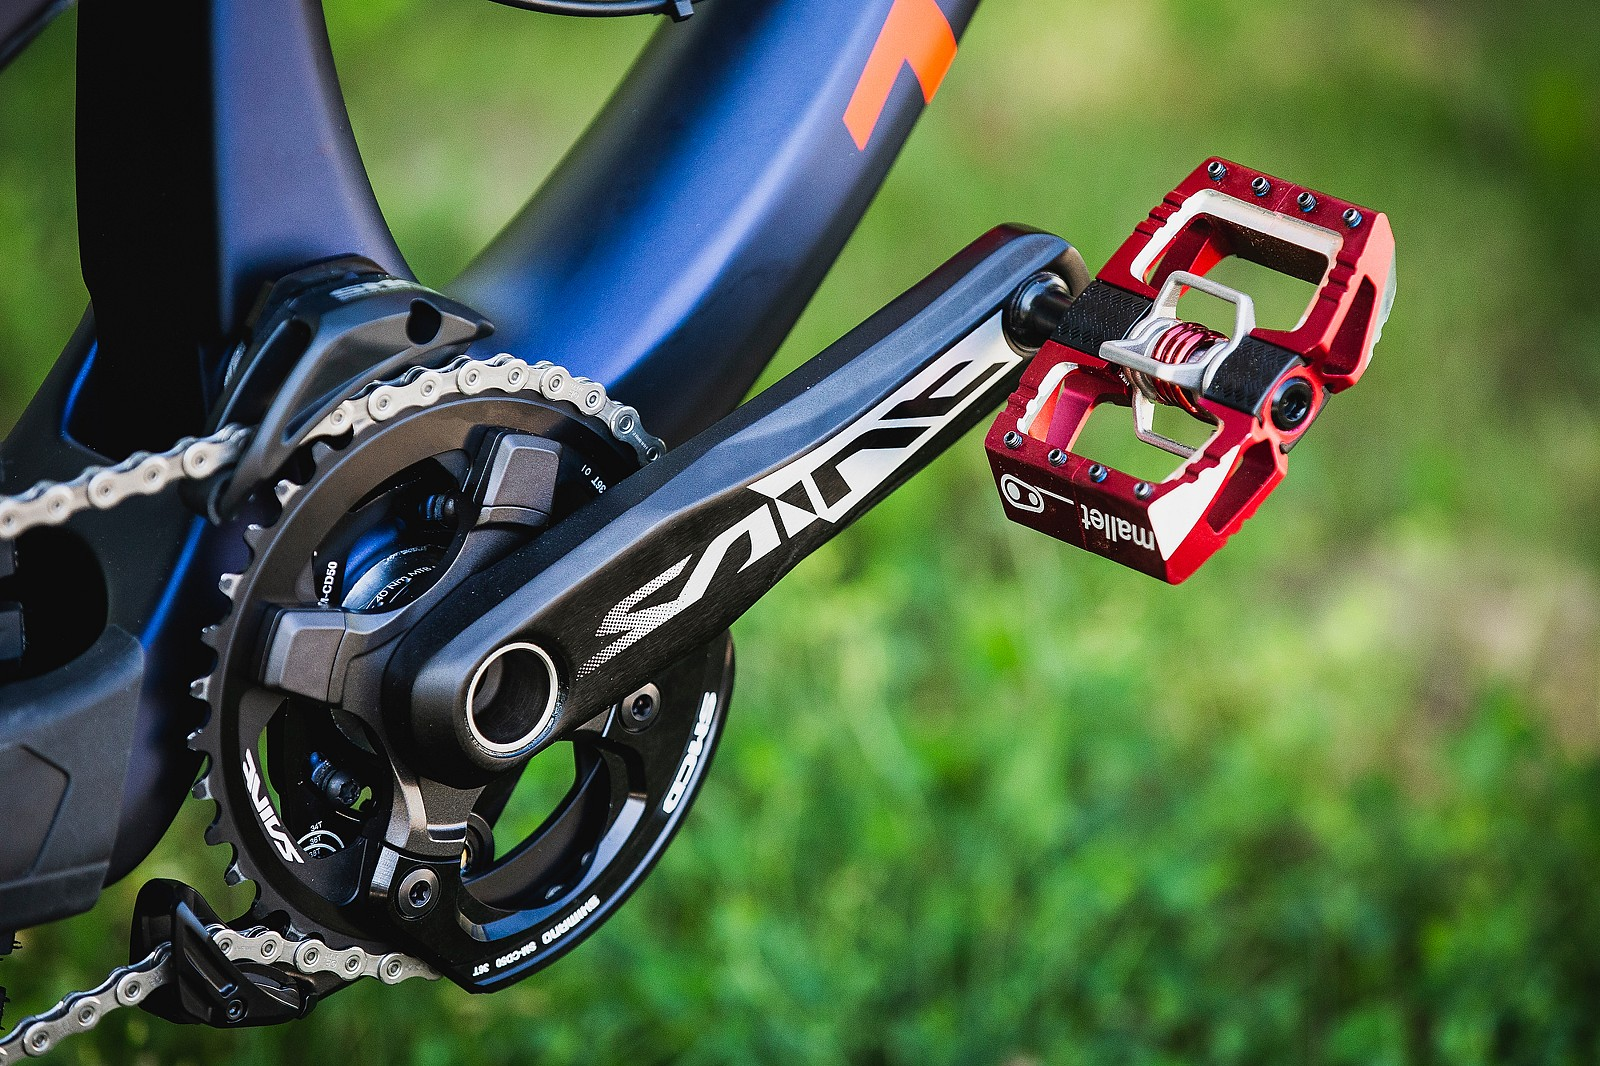 Crankbrothers Mallet DH Pedals - Tahnee Seagrave's World Championships Transition TR11 - Mountain Biking Pictures - Vital MTB